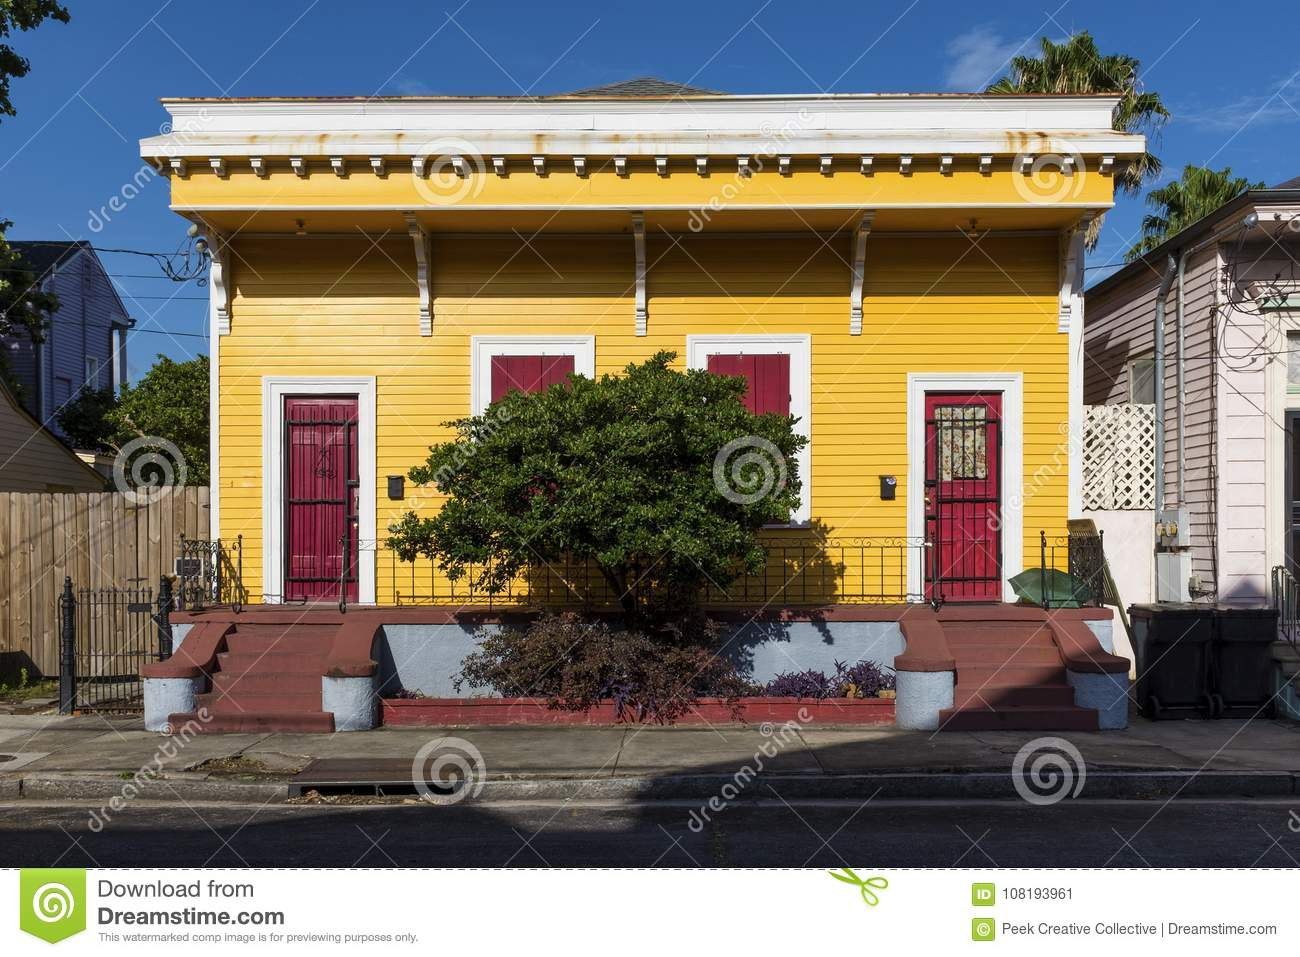 The facade of a traditional colorful house in the Marigny neighborhood in the city of New Orleans, Louisiana